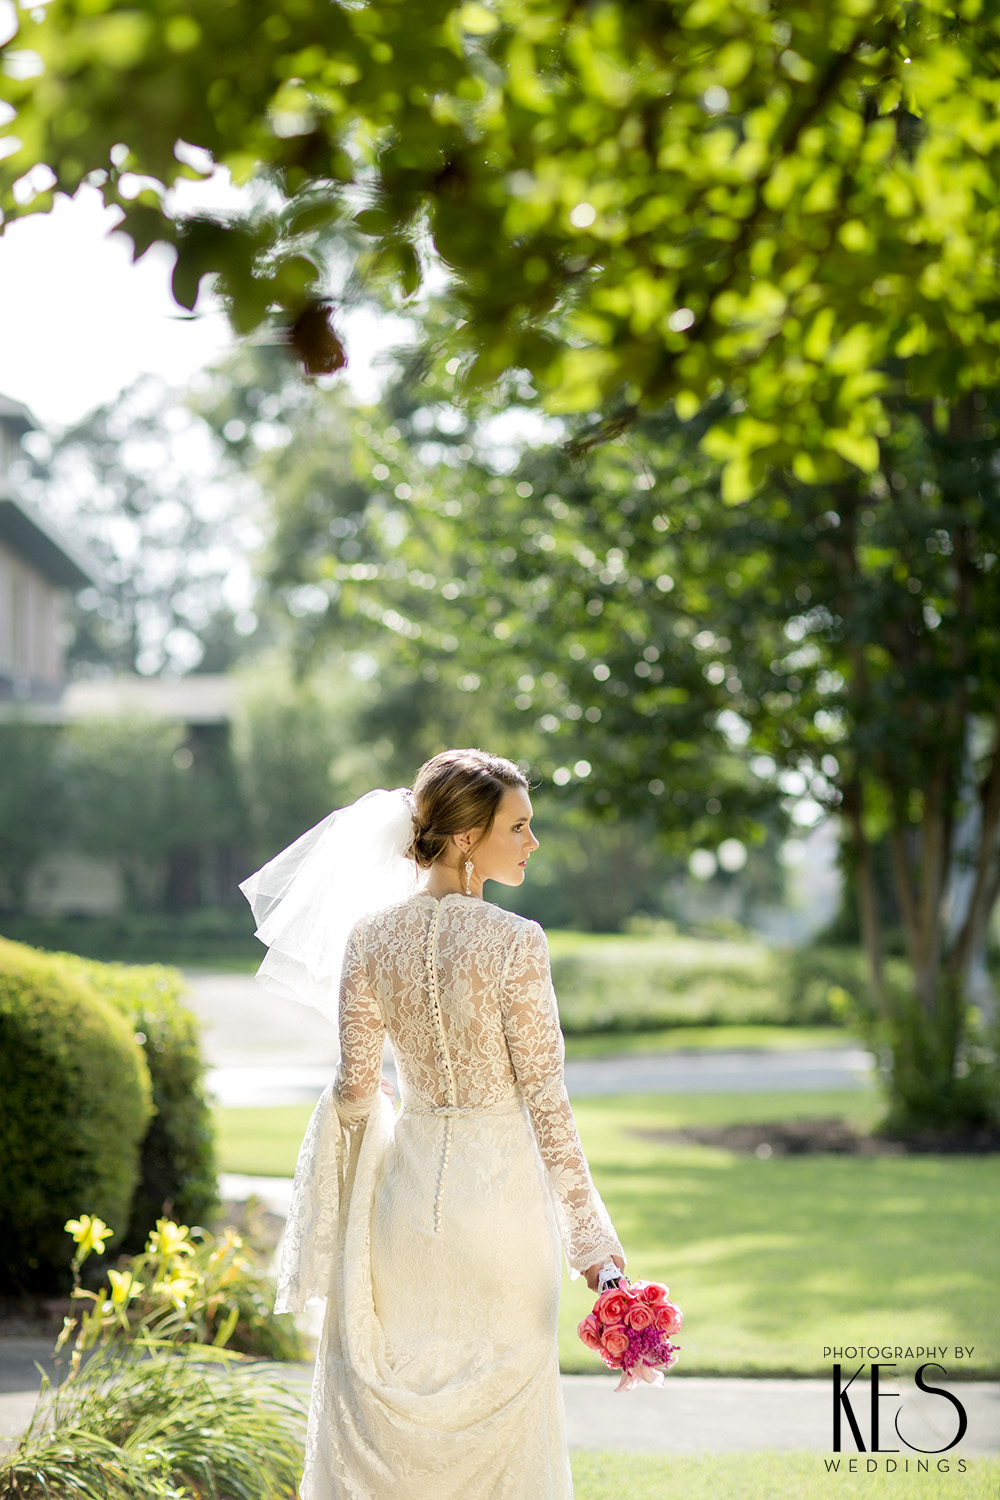 Andria_Bridals_Jonesboro_KES_Weddings_7.JPG